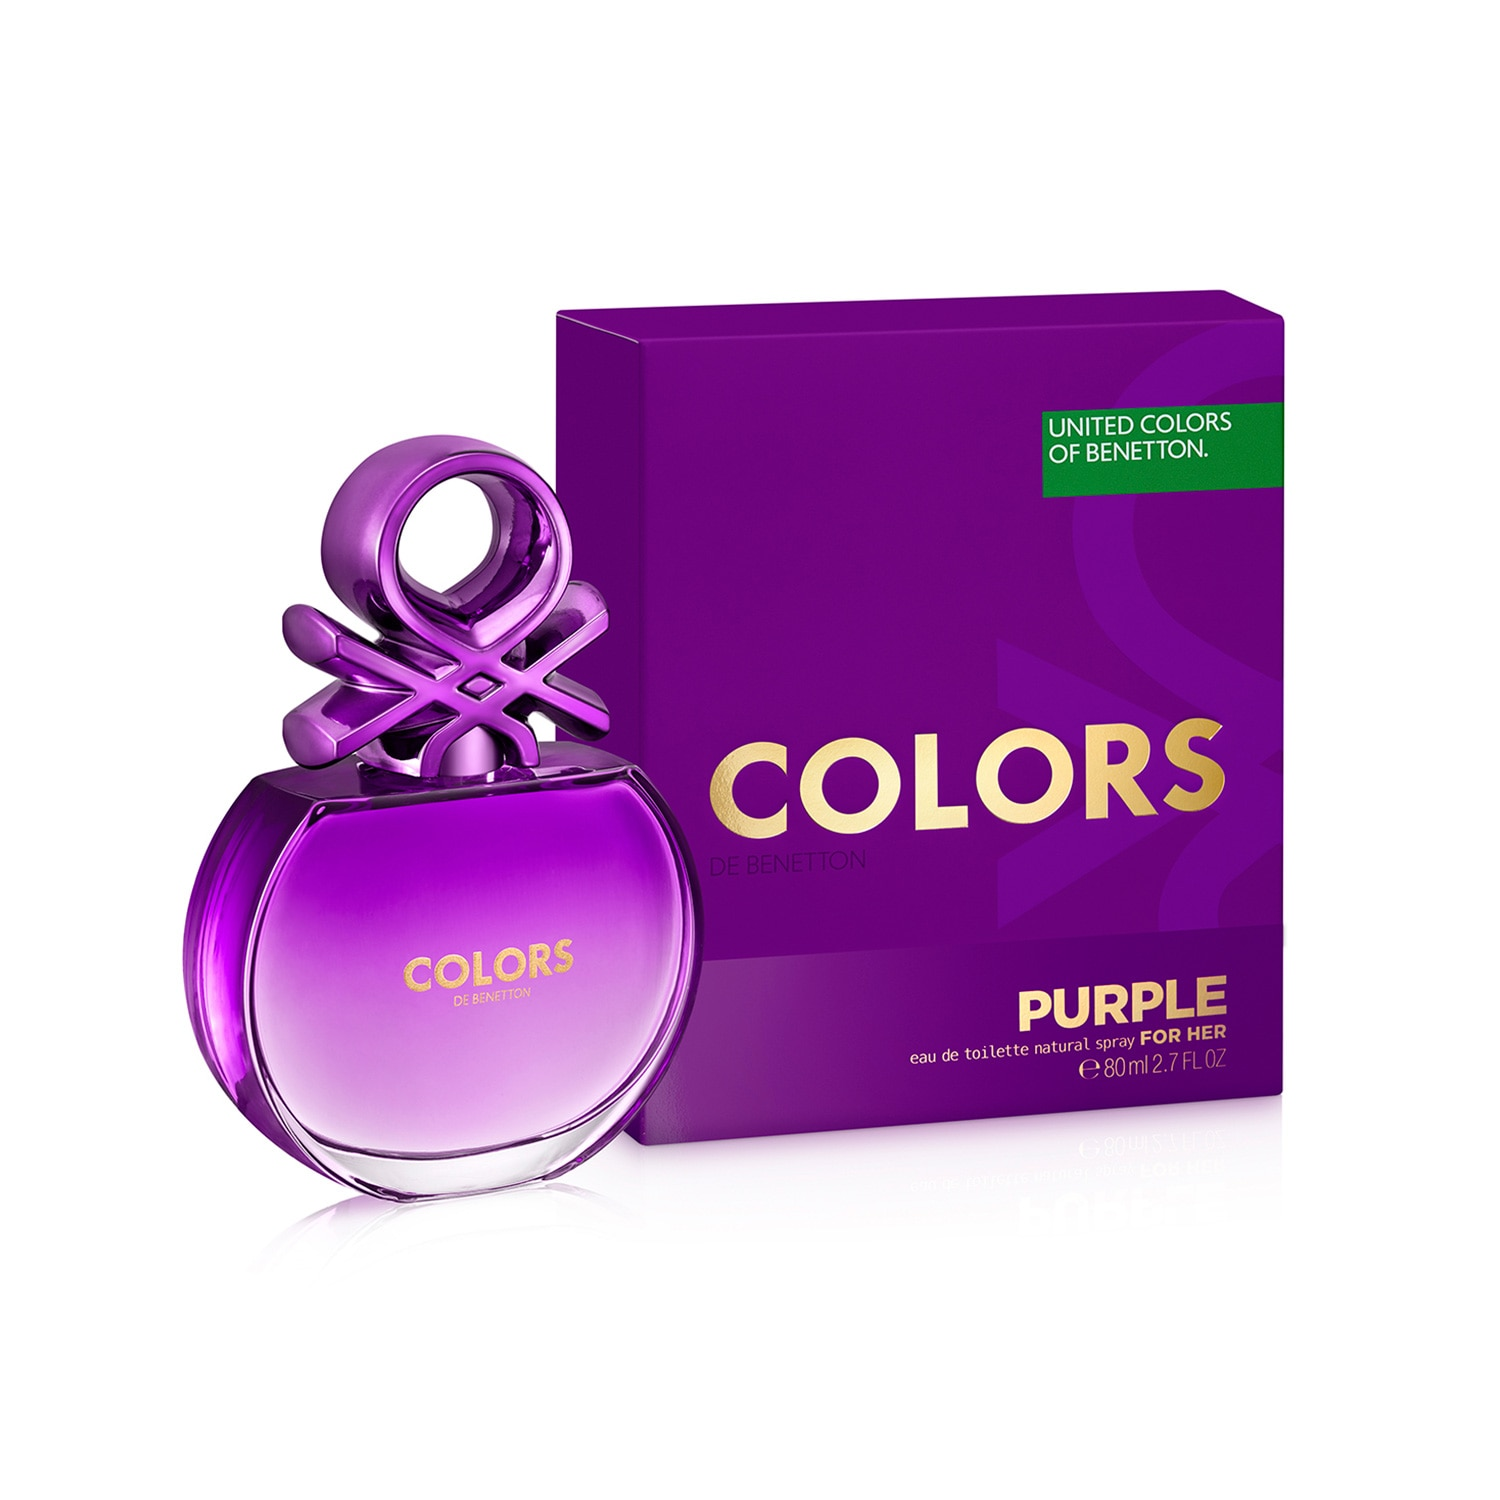 COLORS PURPLE EAU DE TOILETTE 80 ML